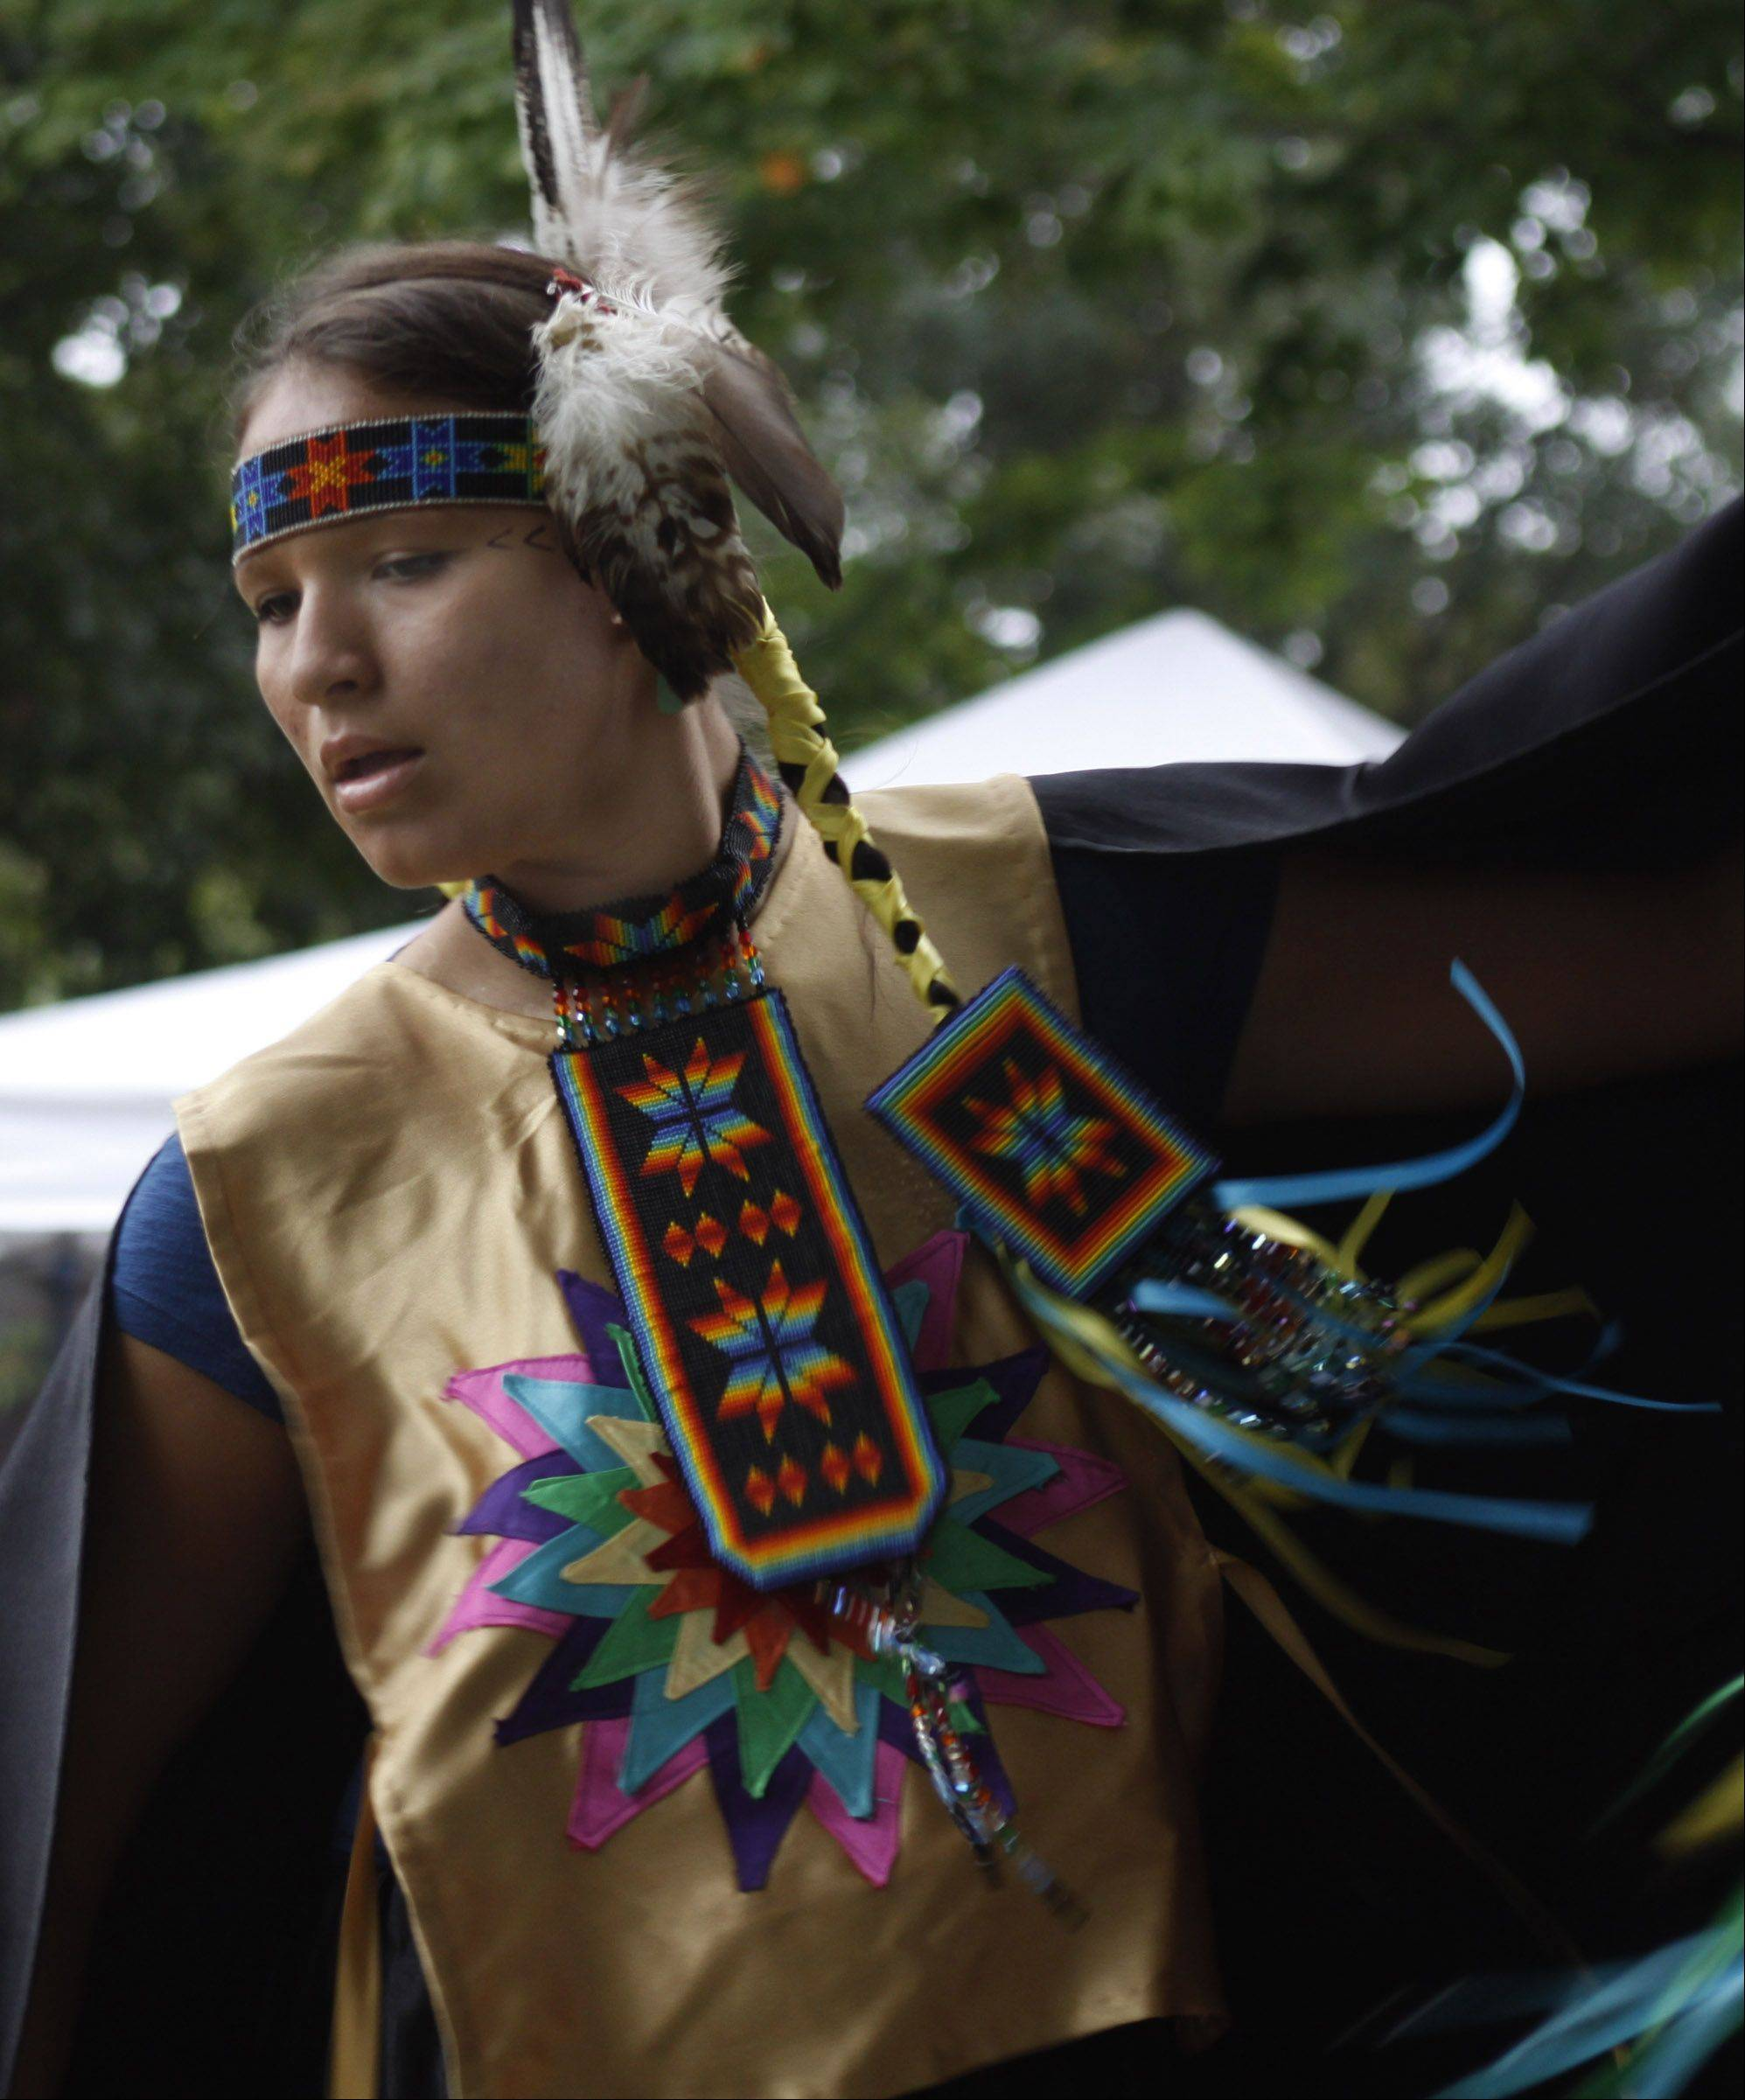 People of Native American heritage travel from around the country to the Harvest Pow Wow at Naper Settlement to carry forward and share the traditions of their tribes.